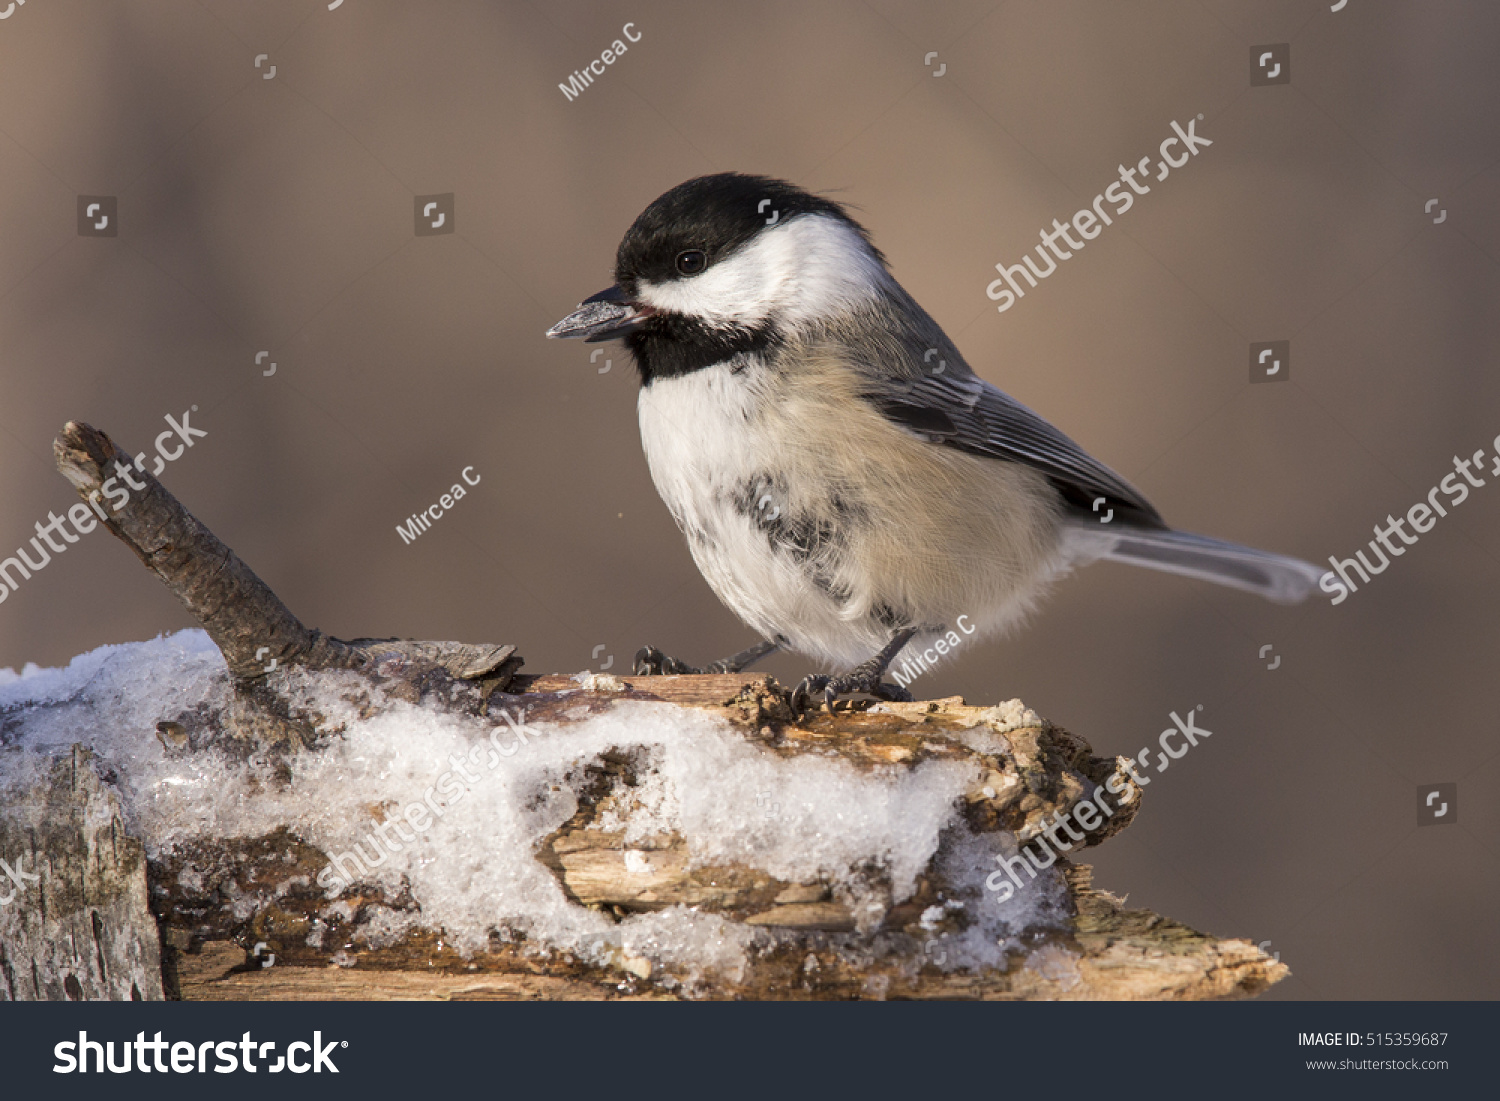 Black-capped Chickadee (Poecile atricapillus) in winter #515359687